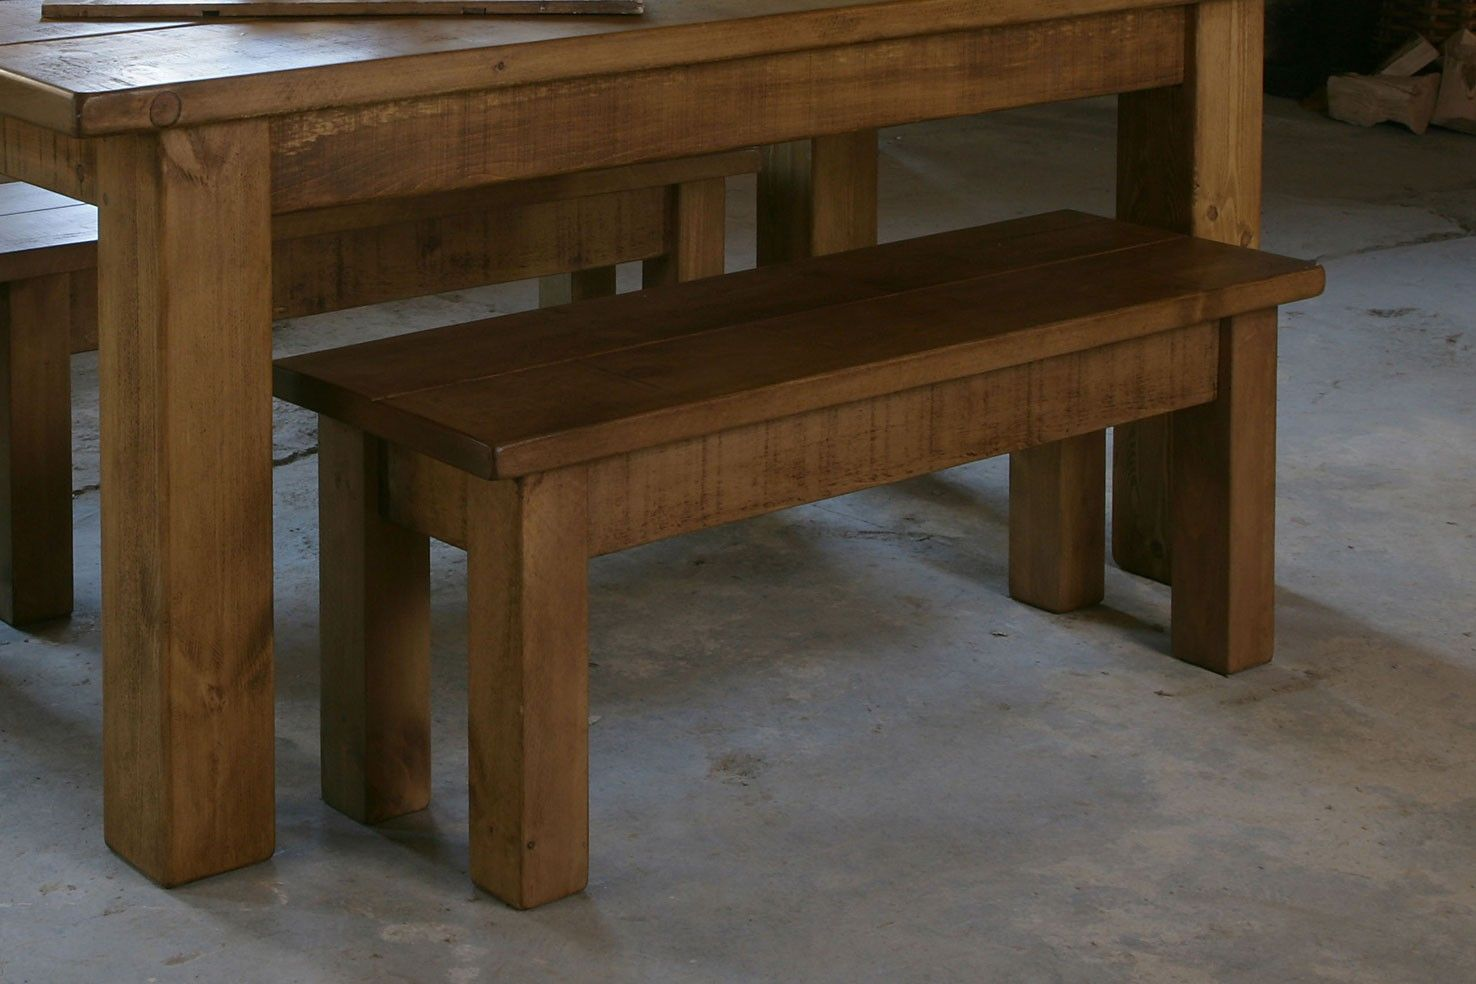 Miller's Plank Bench Pine dining table, Table and bench